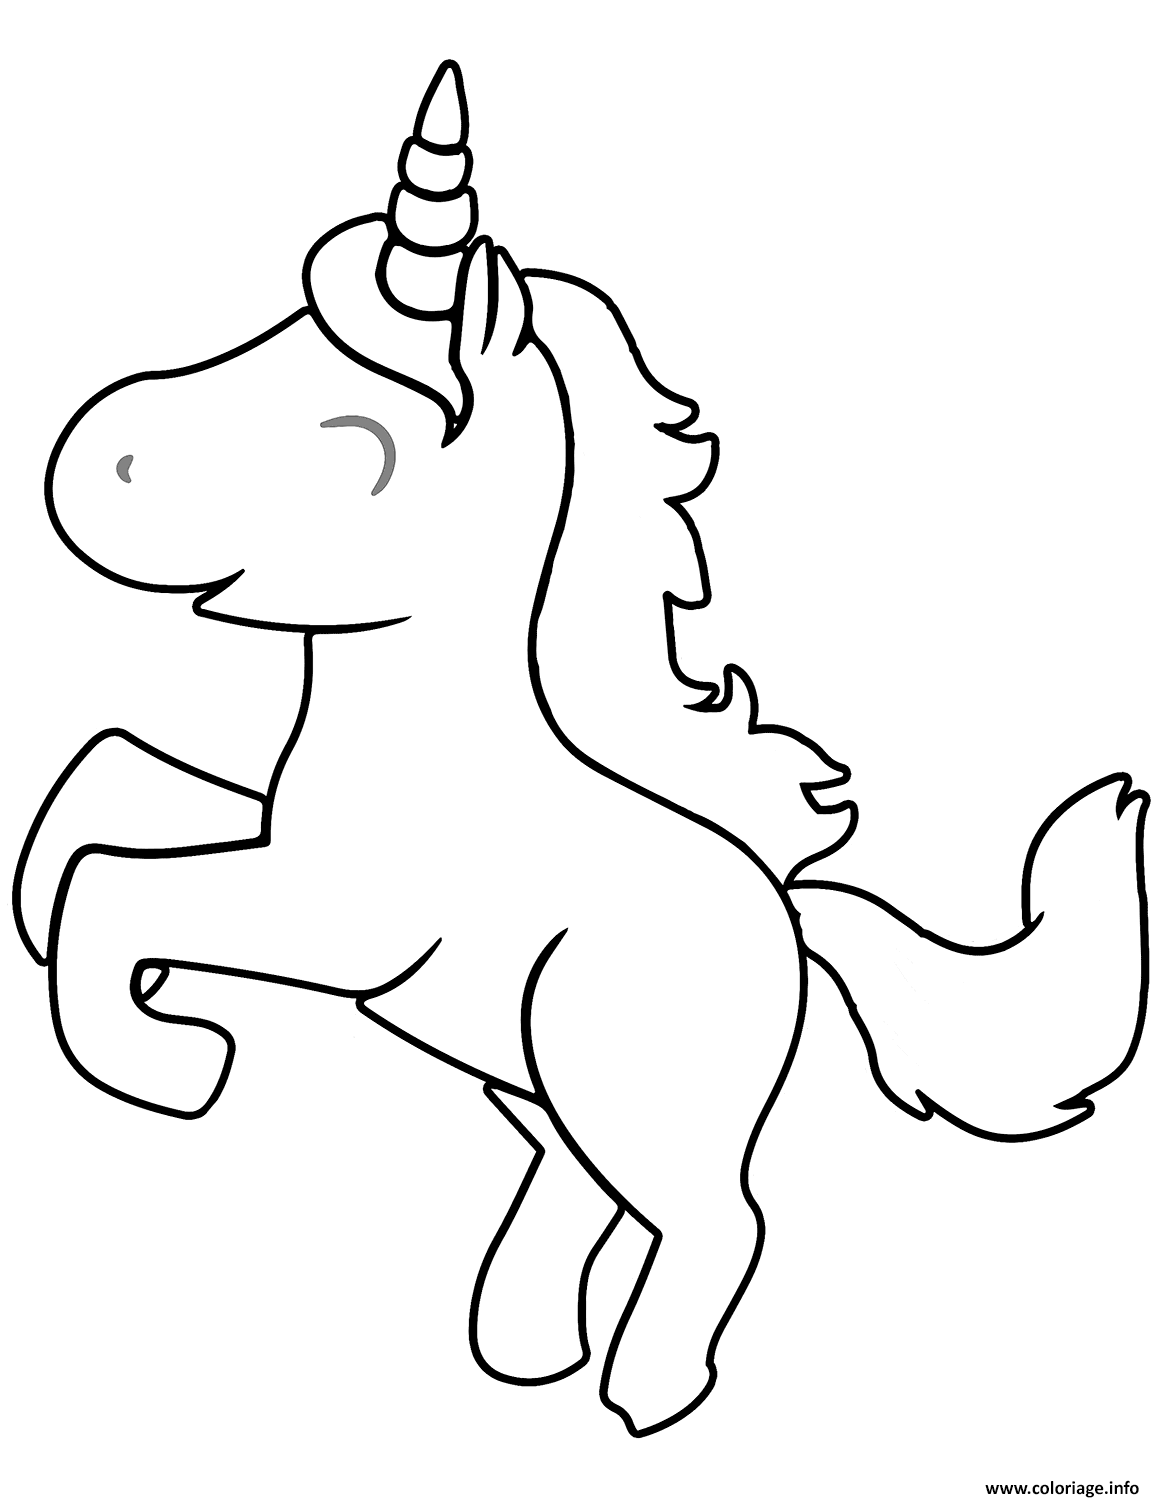 Dessin cute cartoon licorne Coloriage Gratuit à Imprimer